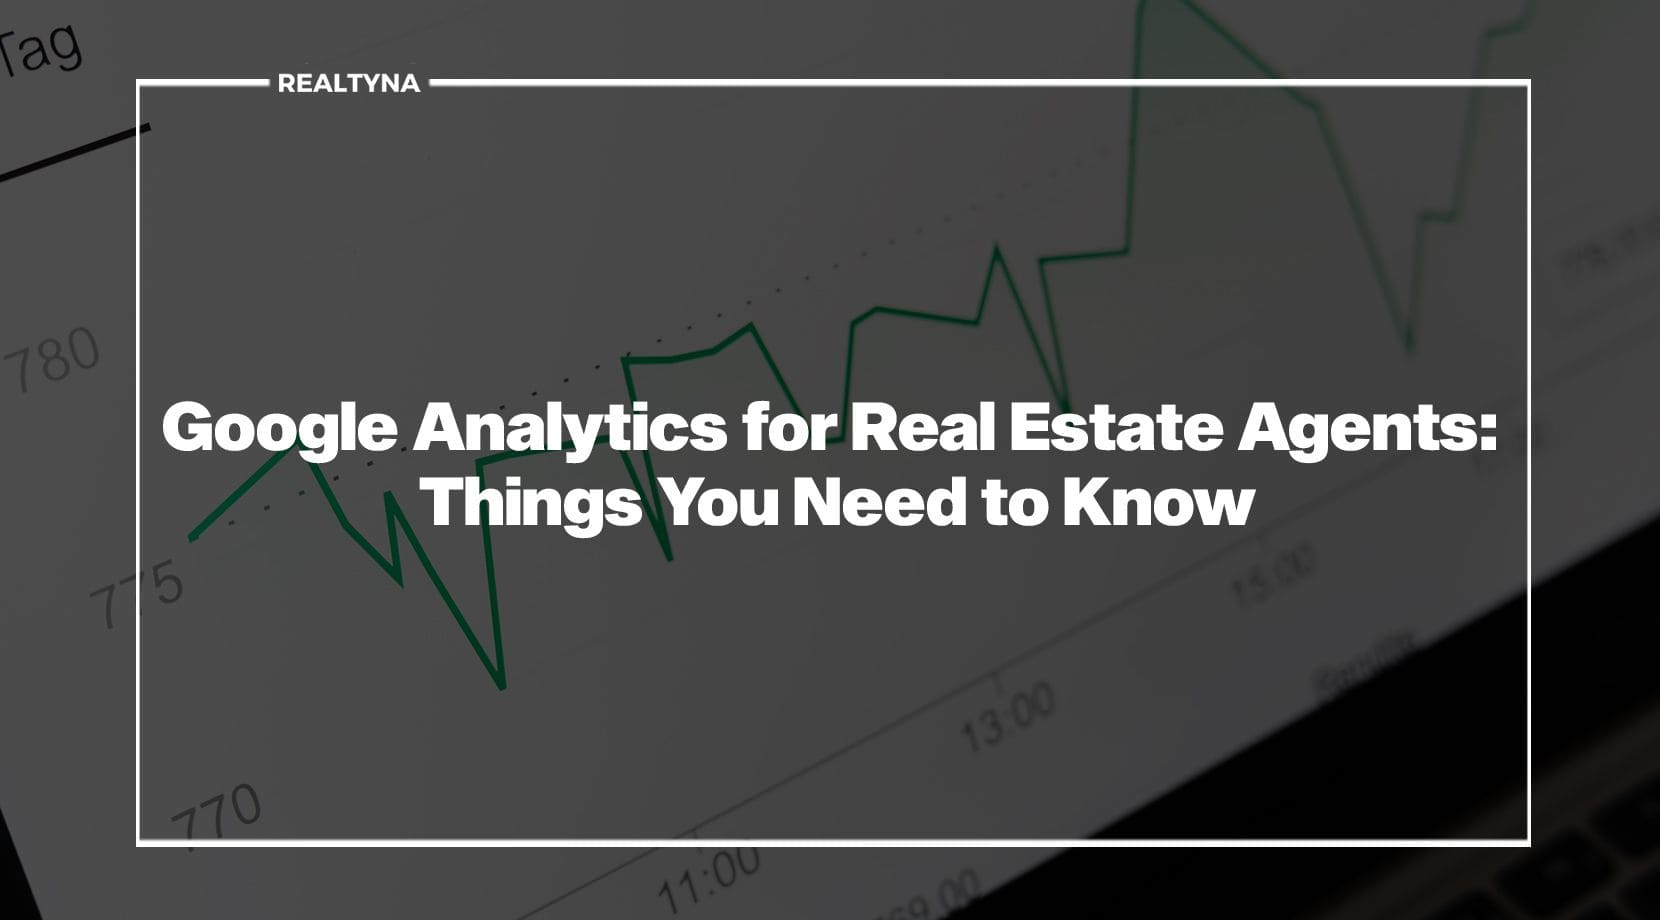 Google Analytics for Real Estate Agents: Things You Need to Know